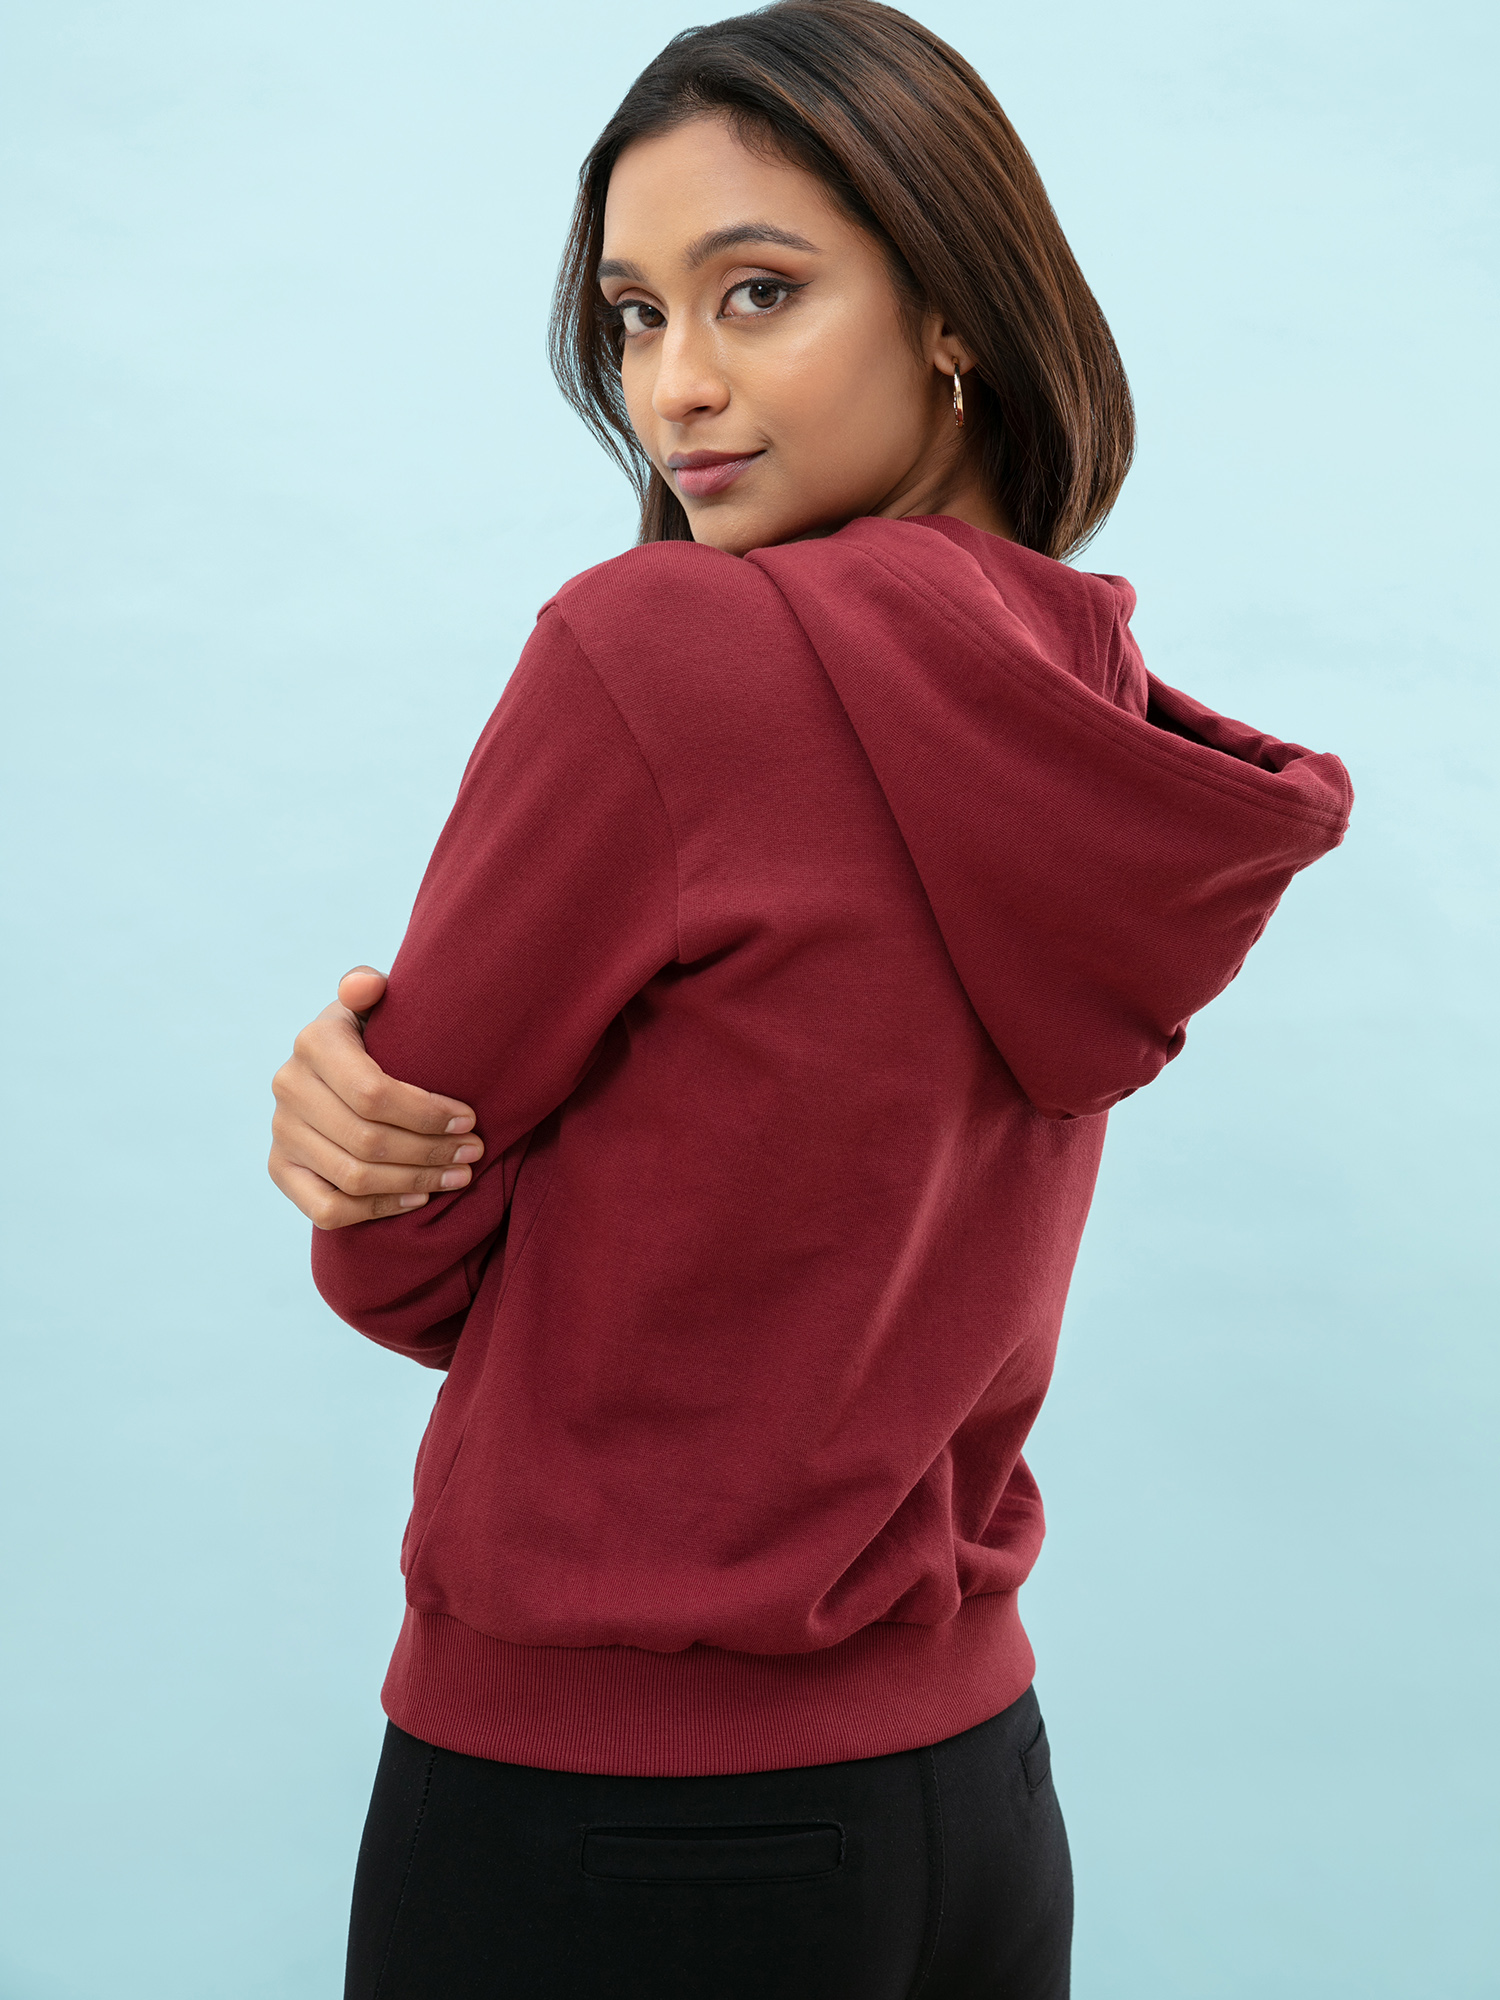 Tops-Pocket Full Of Maroon Hoodie3